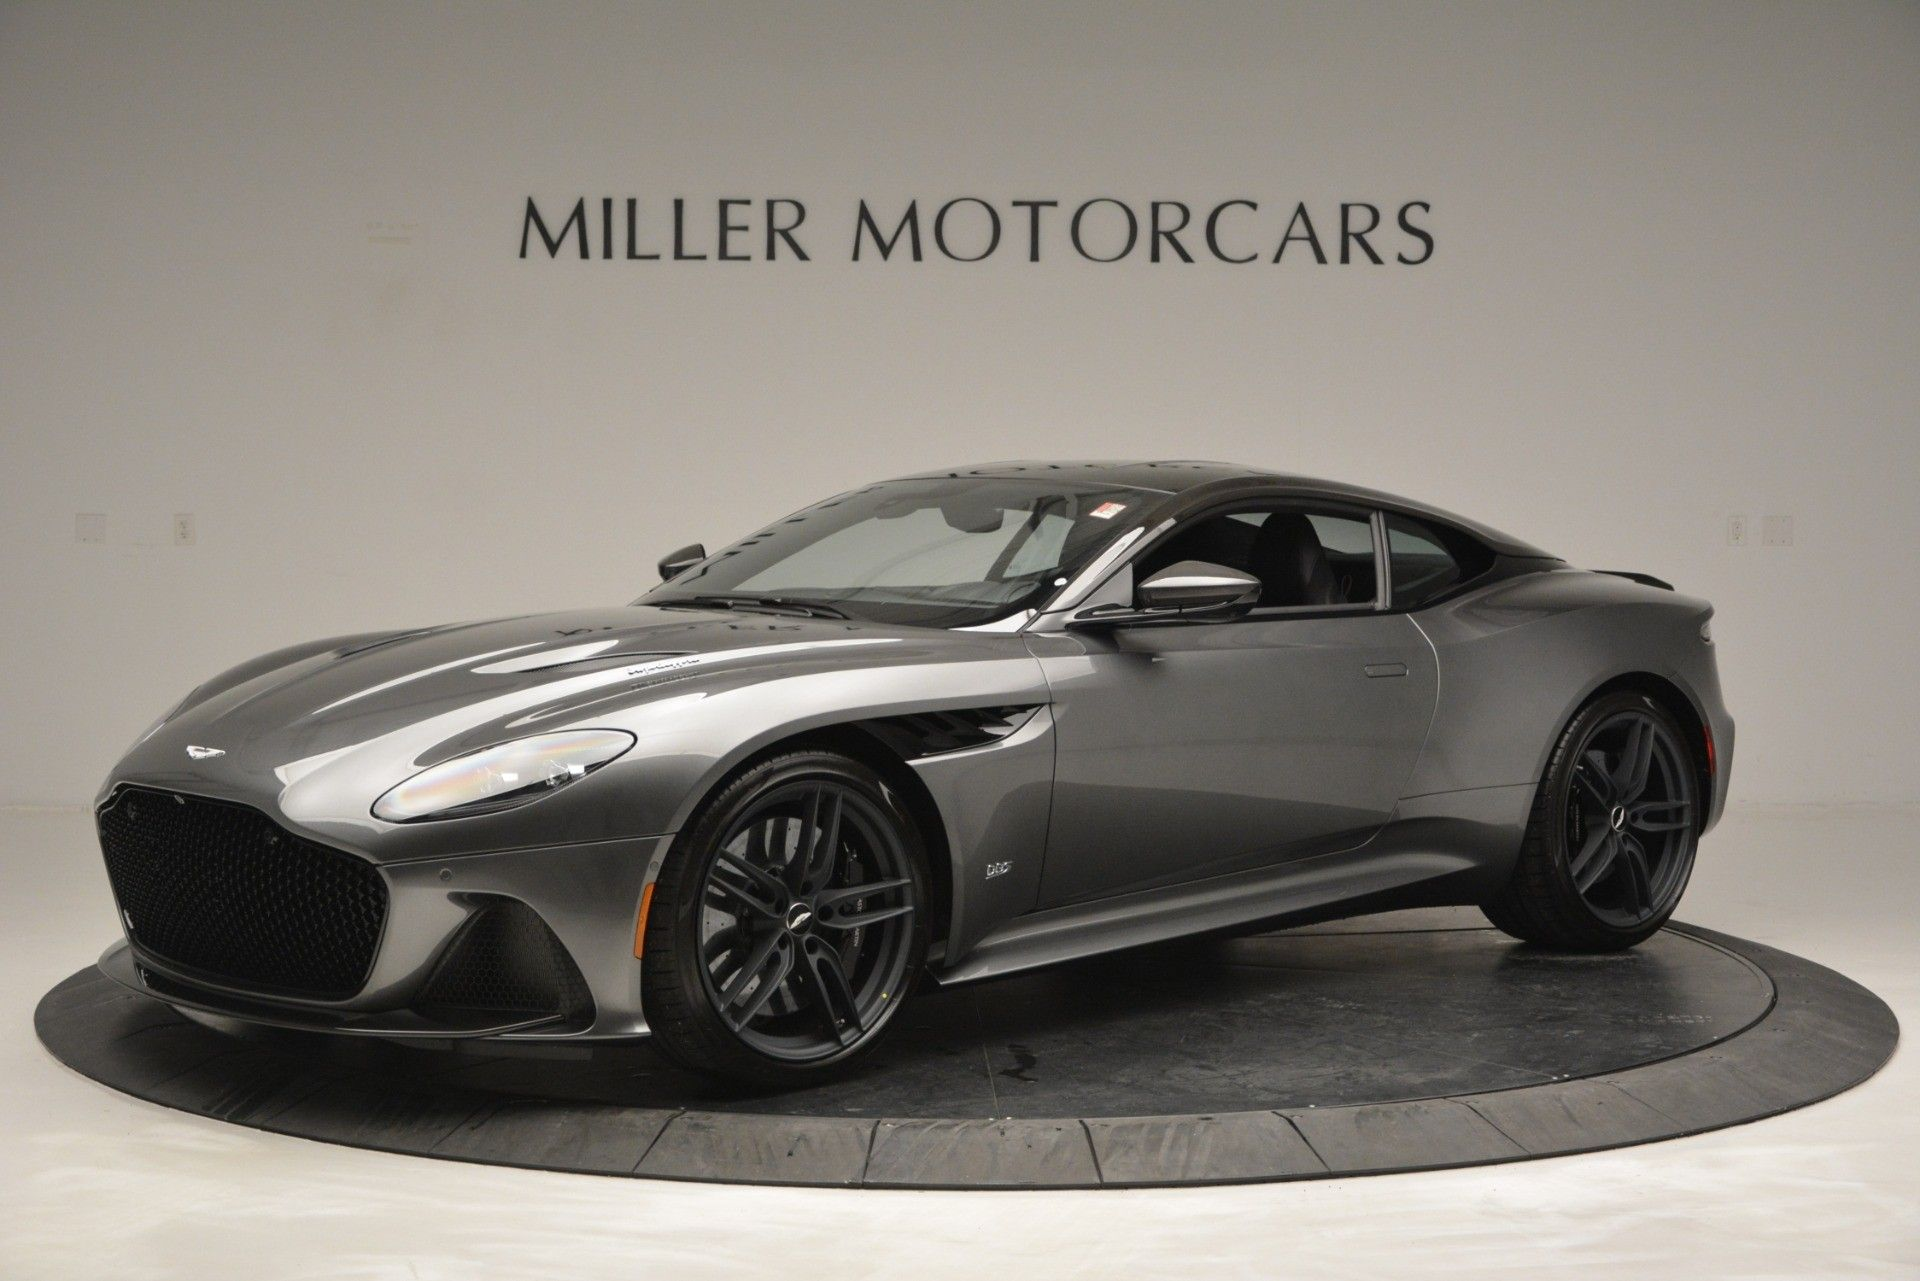 Awesome Aston Martin Dbs Price View Details Https Dantuckerautos Com Aston Martin Dbs Price Aston Martin Aston Martin Dbs Aston